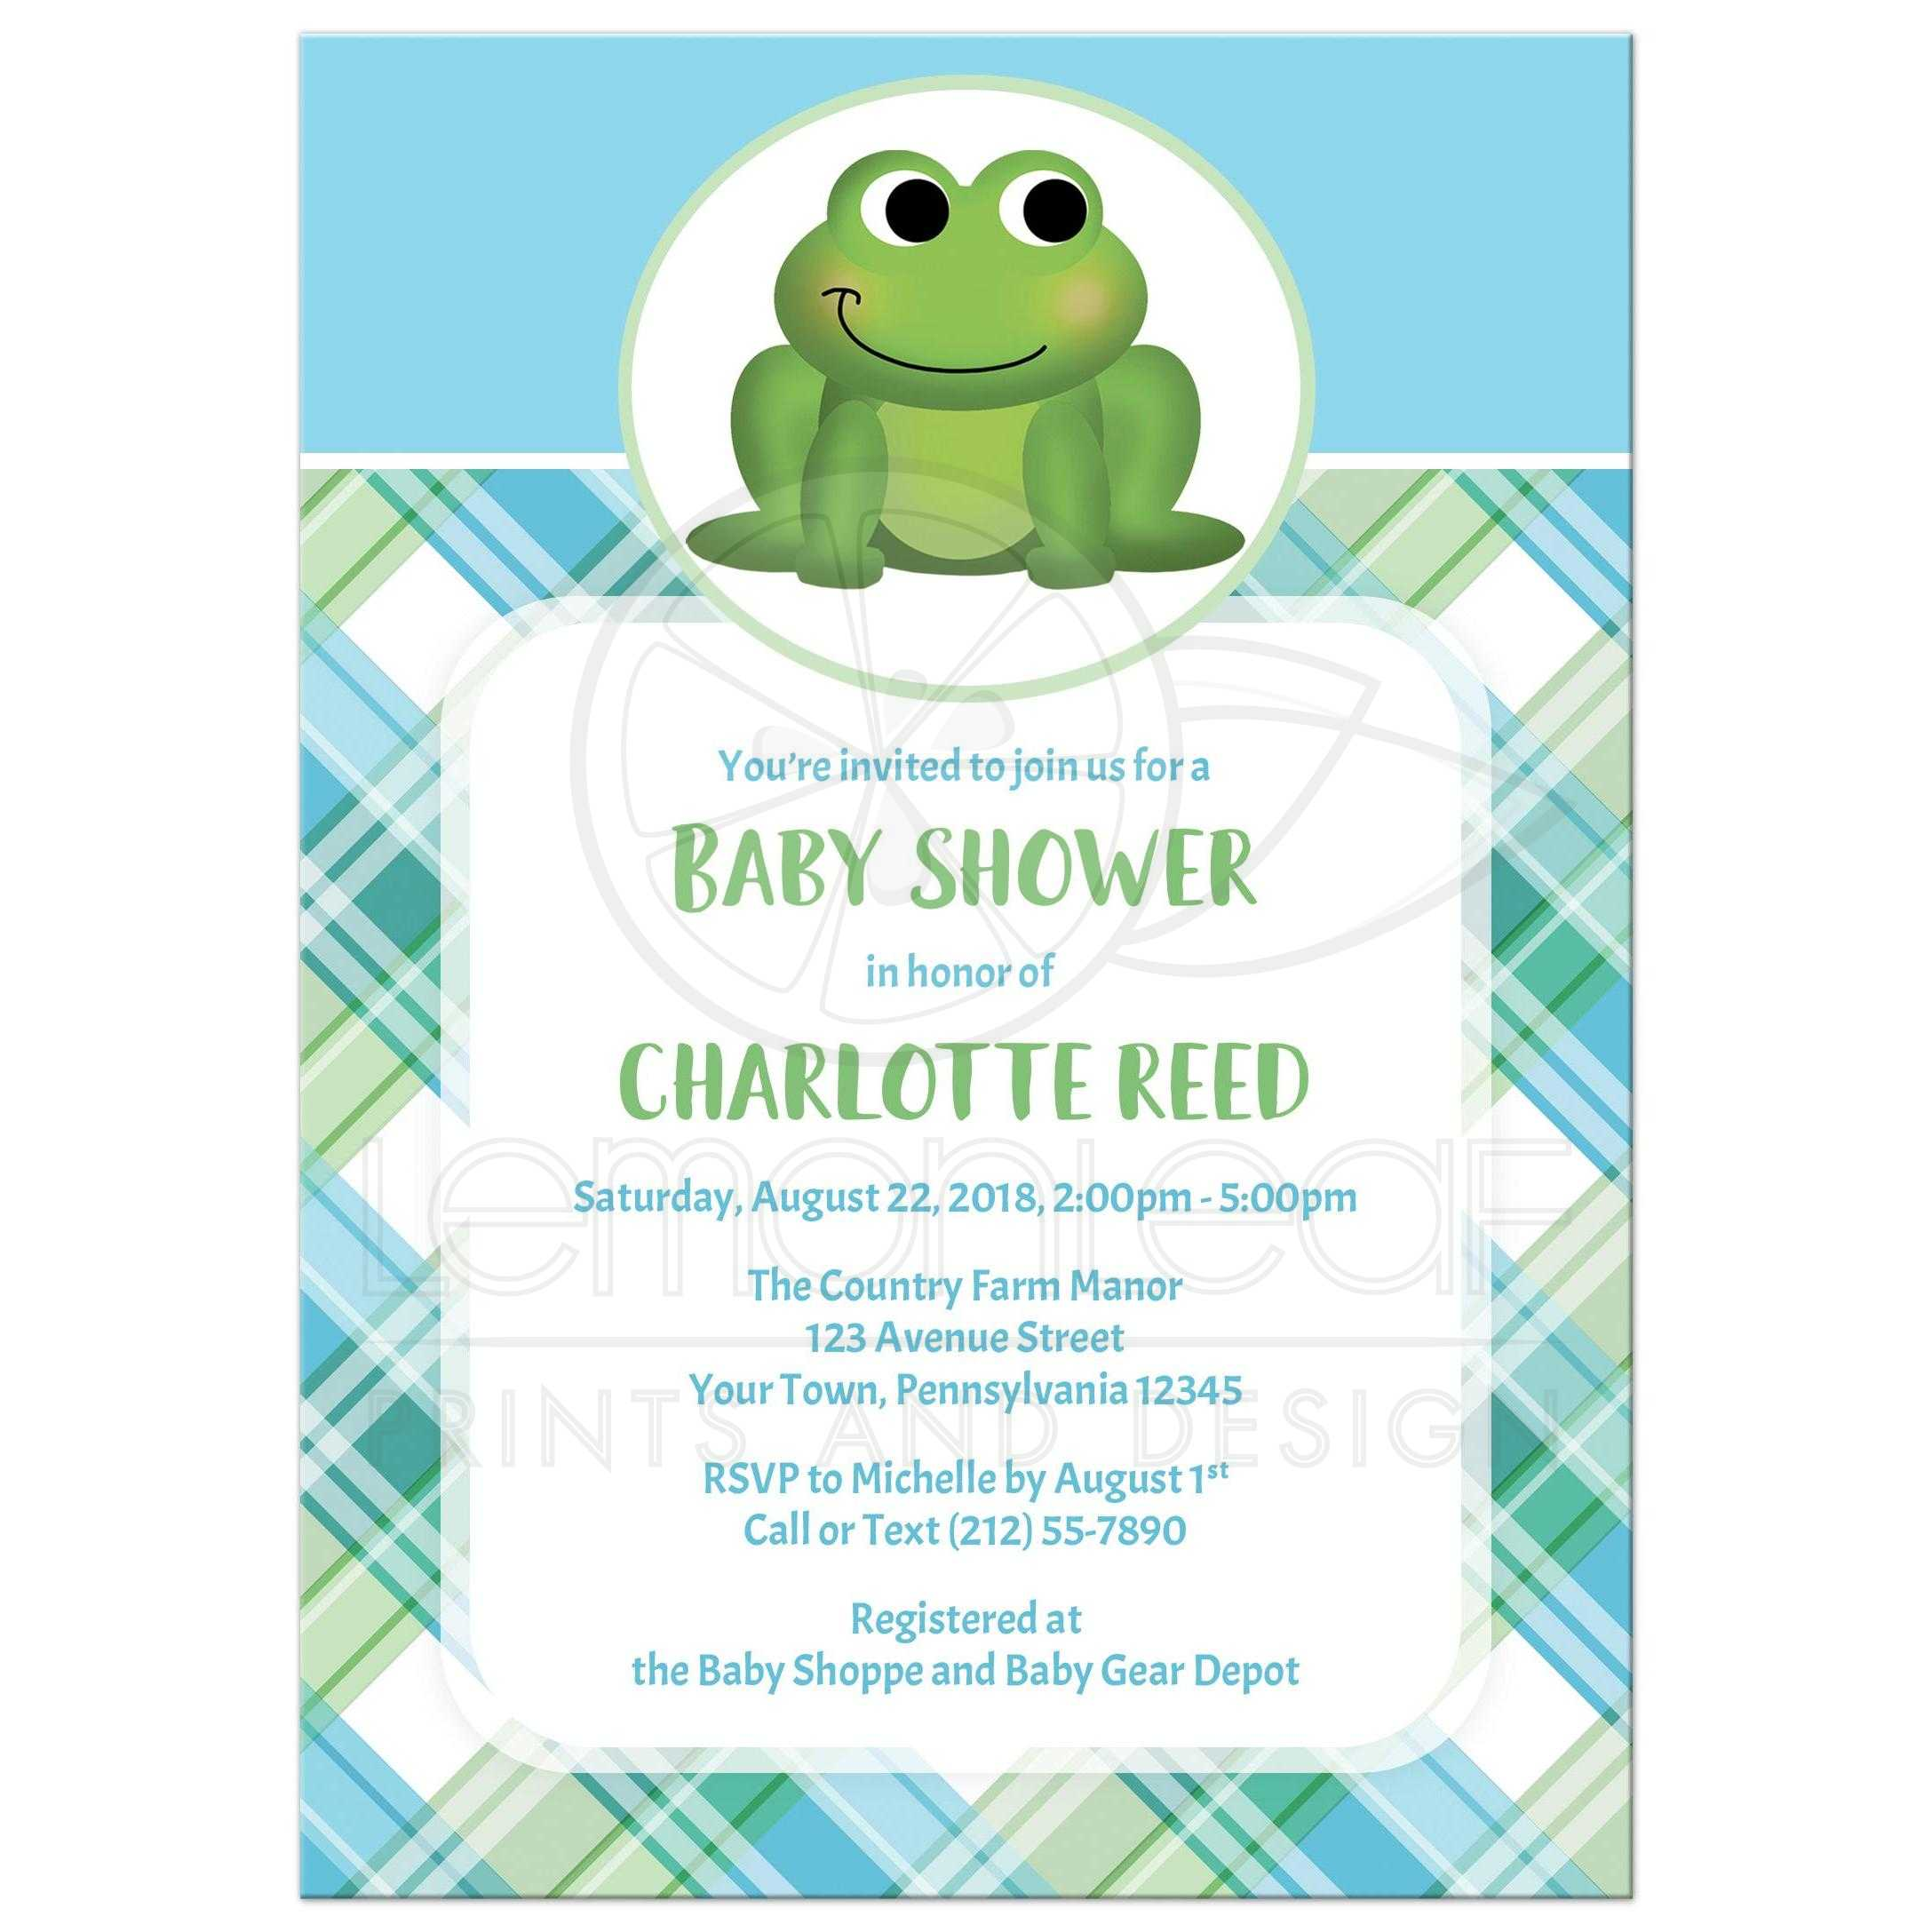 Baby Shower Invitations Adorable Frog Green And Blue Plaid